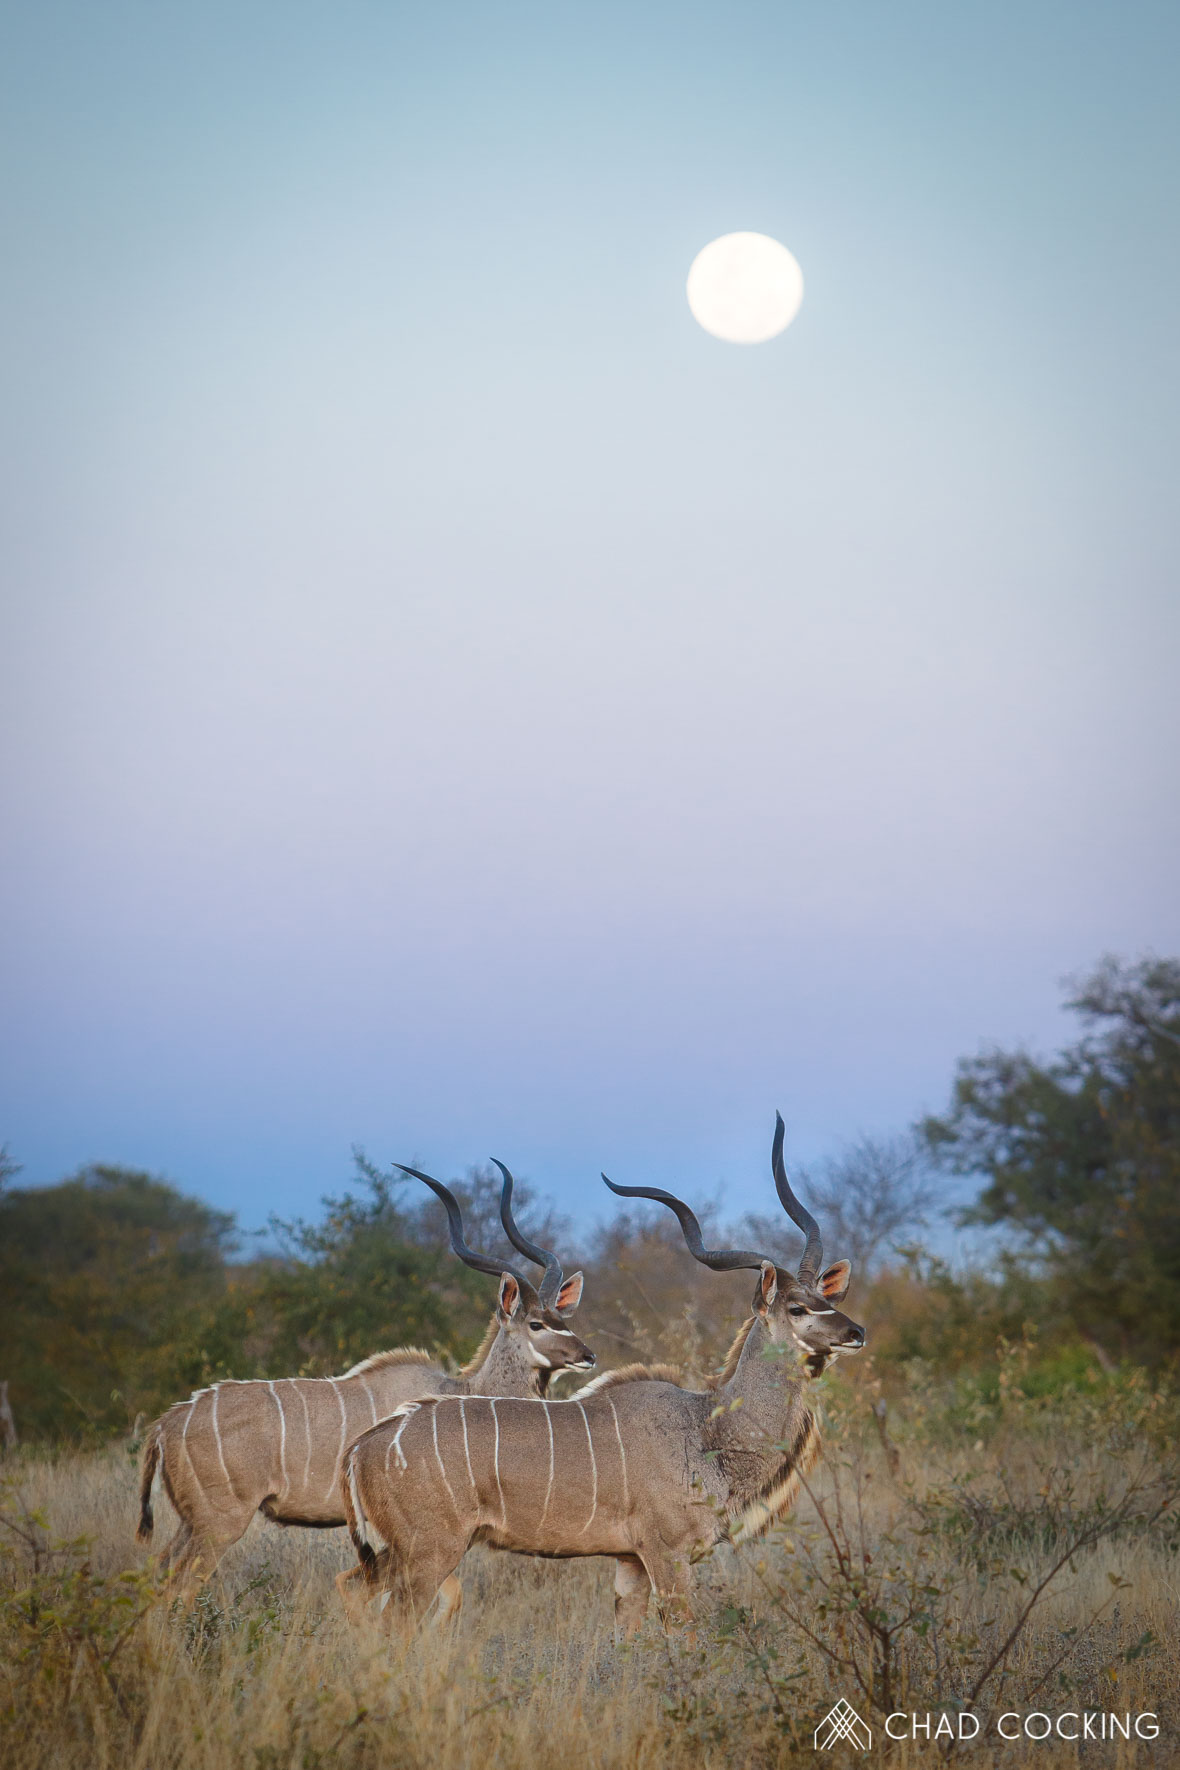 Tanda Tula - kudus in the full moon on safari